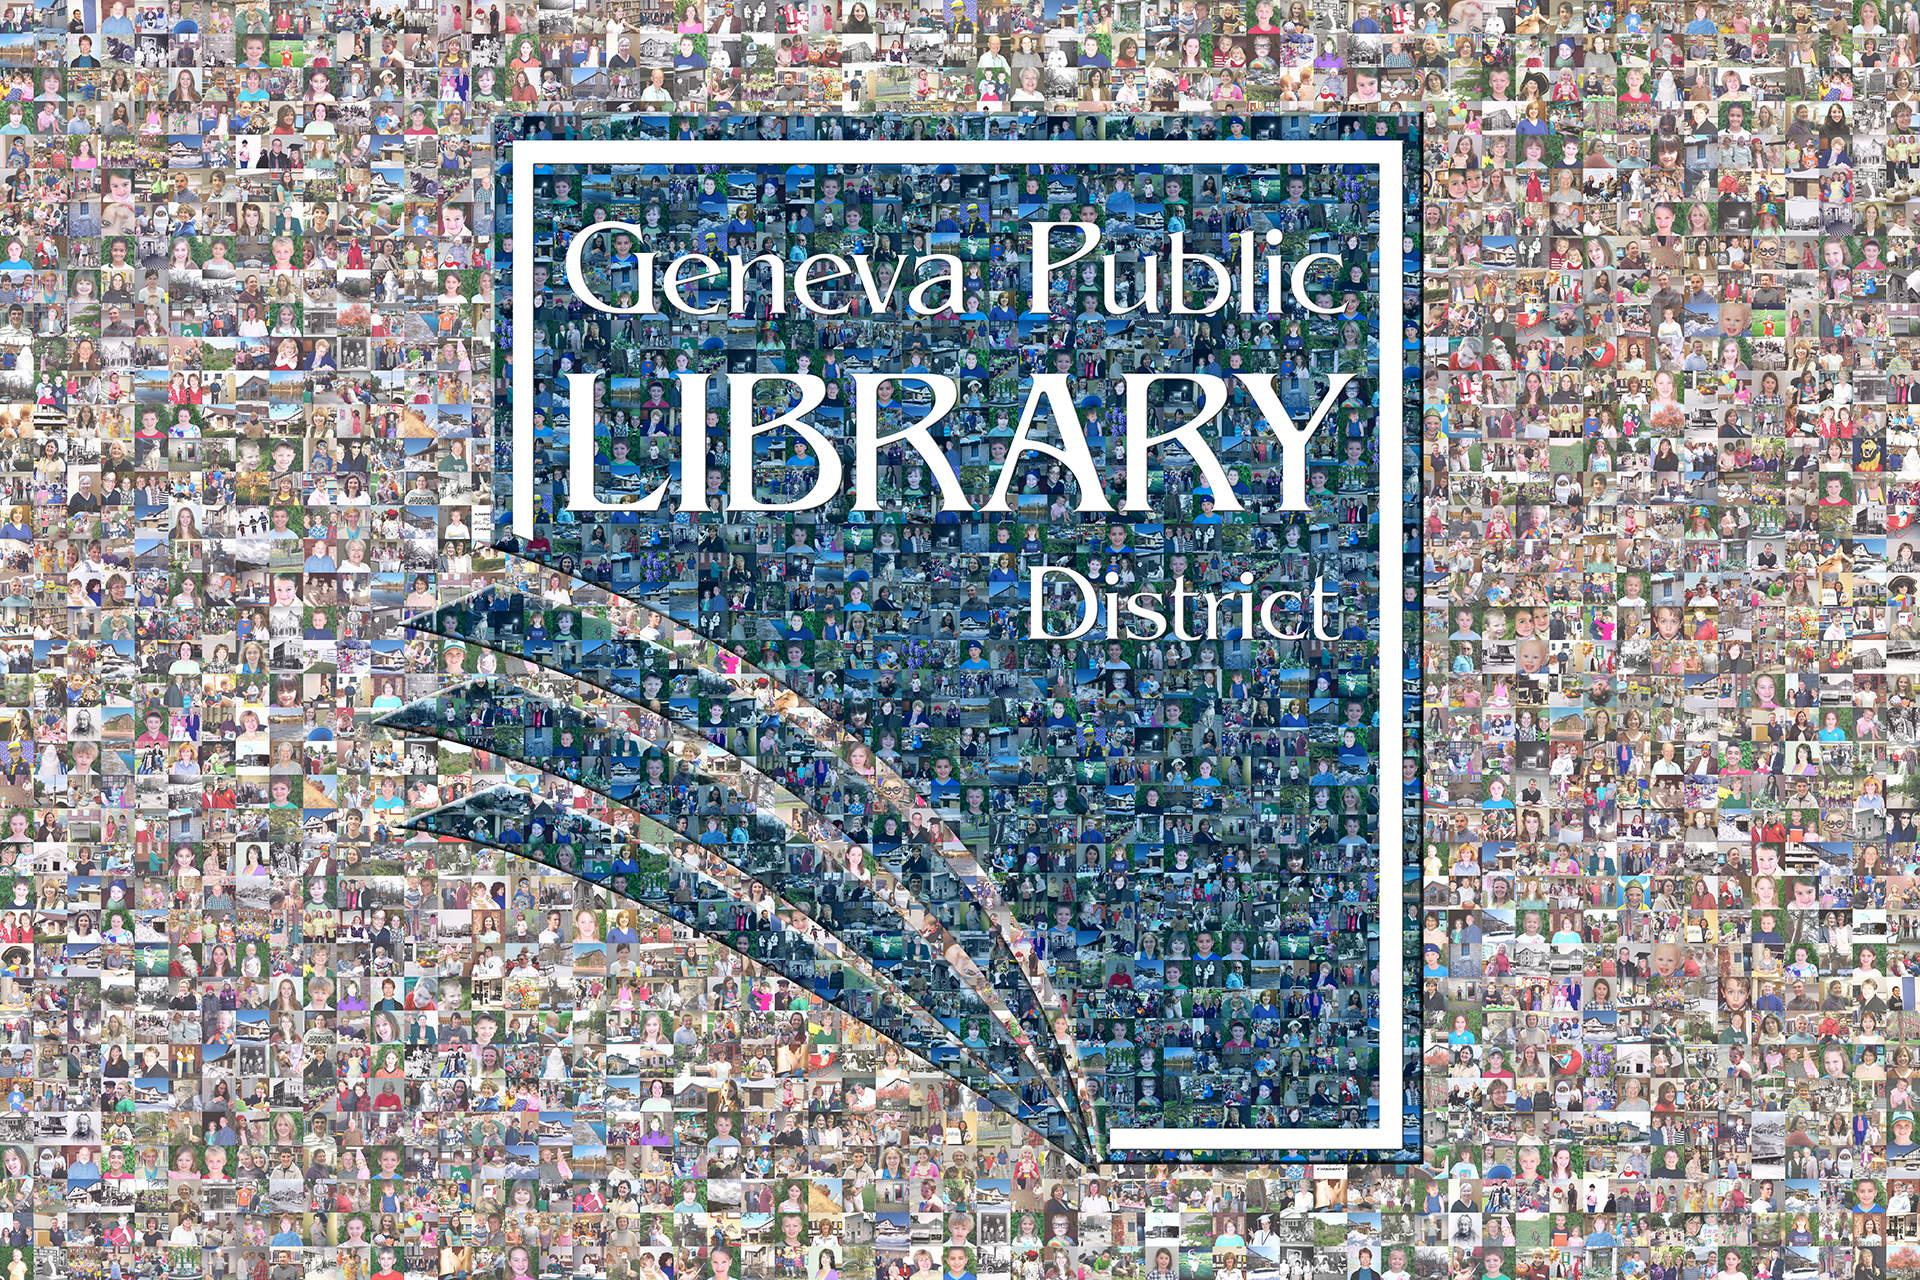 photo mosaic this public library used 610 photos of its members to create this tiered mosaic